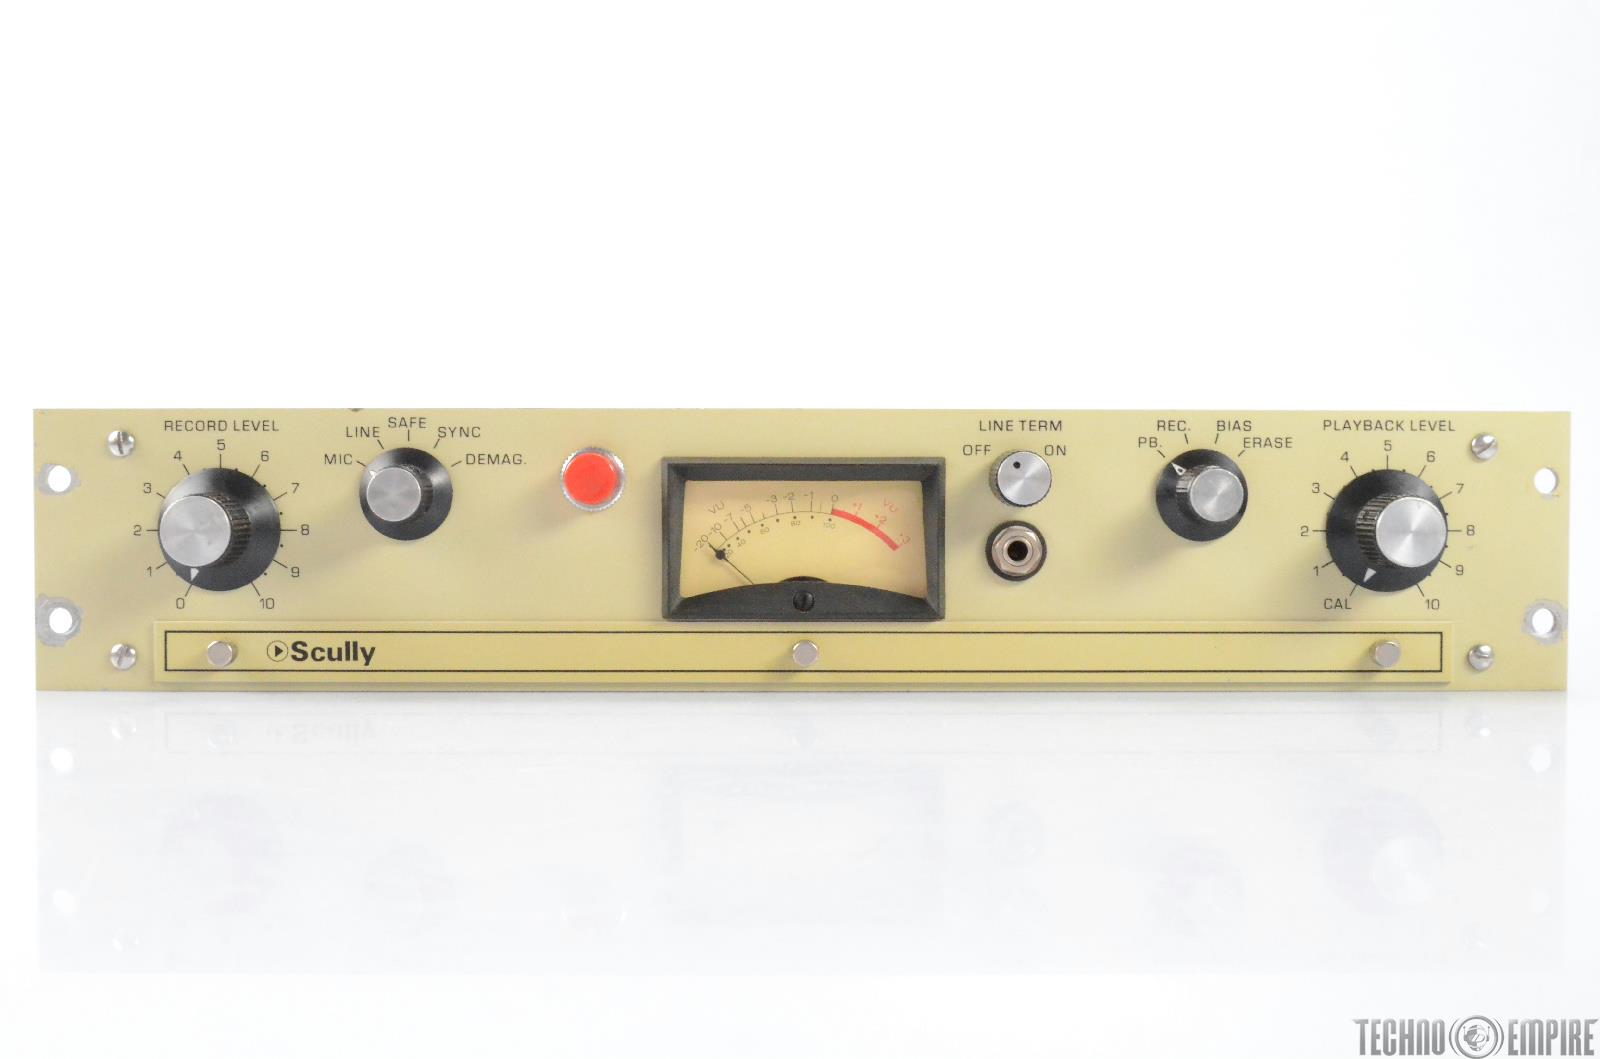 Scully 280 Tape Machine Electronics Module Preamp Fairfax Recorders #28616